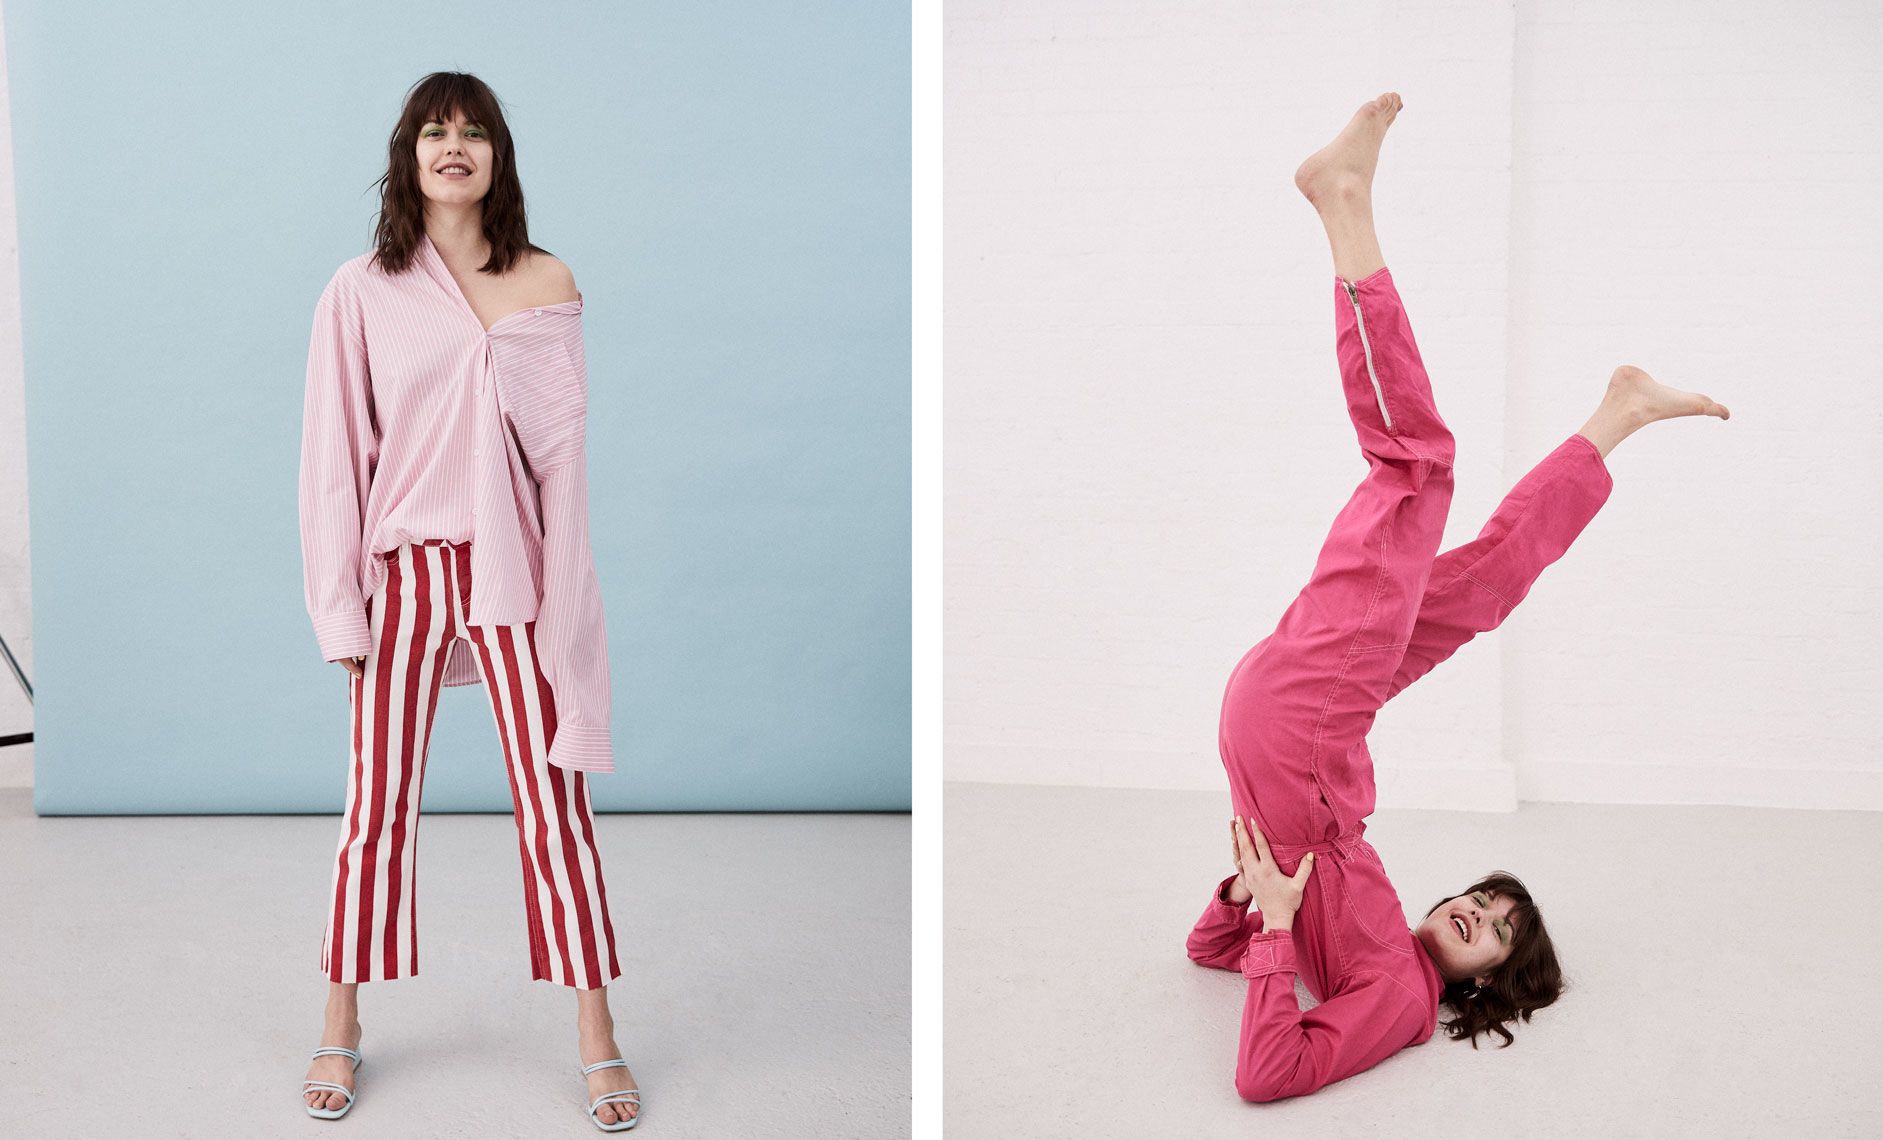 issie-gibbons-fashion-stylist-grazia-stripes-physicality-pink